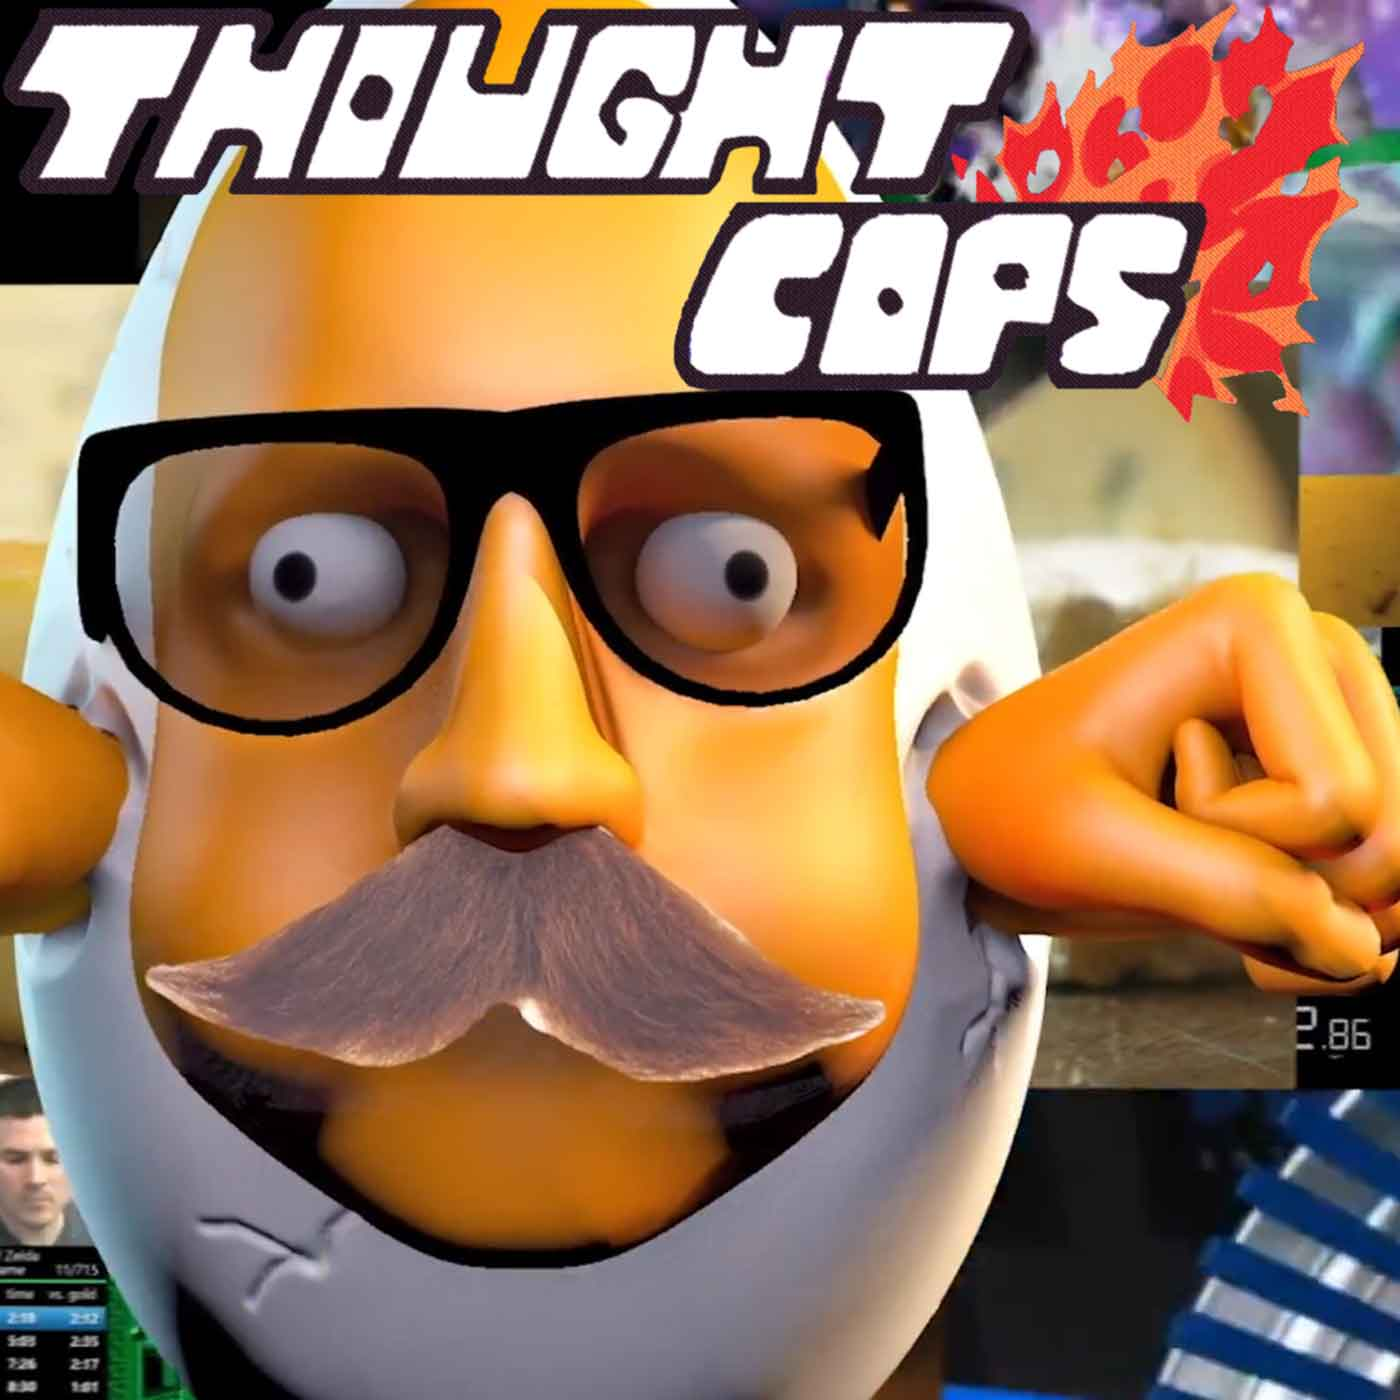 168-thought-cops-tyler-russo